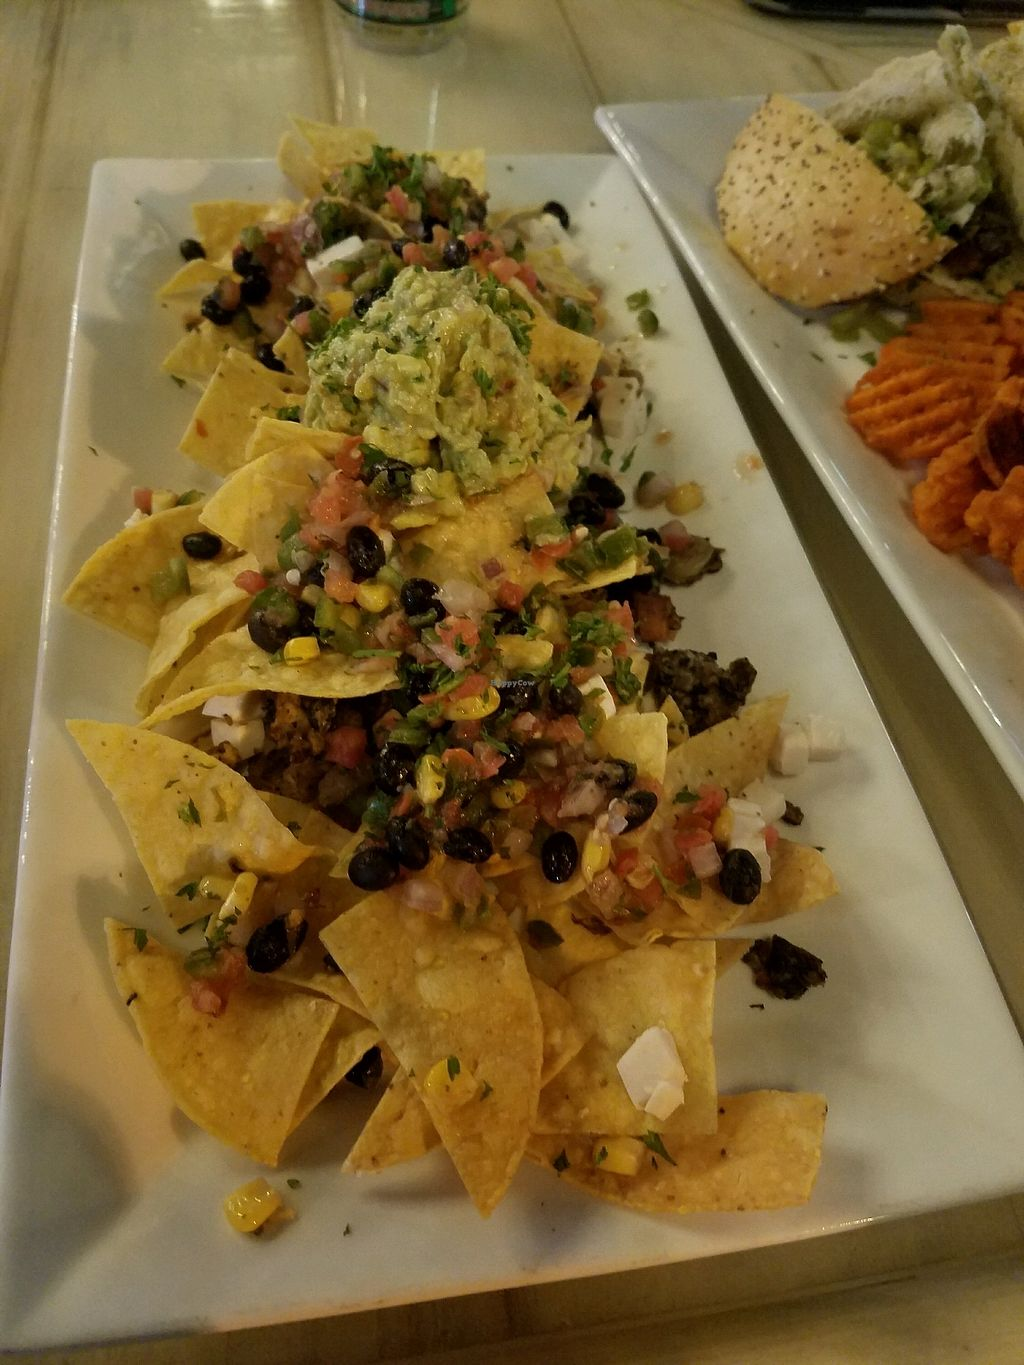 """Photo of Brixens  by <a href=""""/members/profile/MarisaD"""">MarisaD</a> <br/>Vegan nachos <br/> December 17, 2017  - <a href='/contact/abuse/image/103085/336507'>Report</a>"""